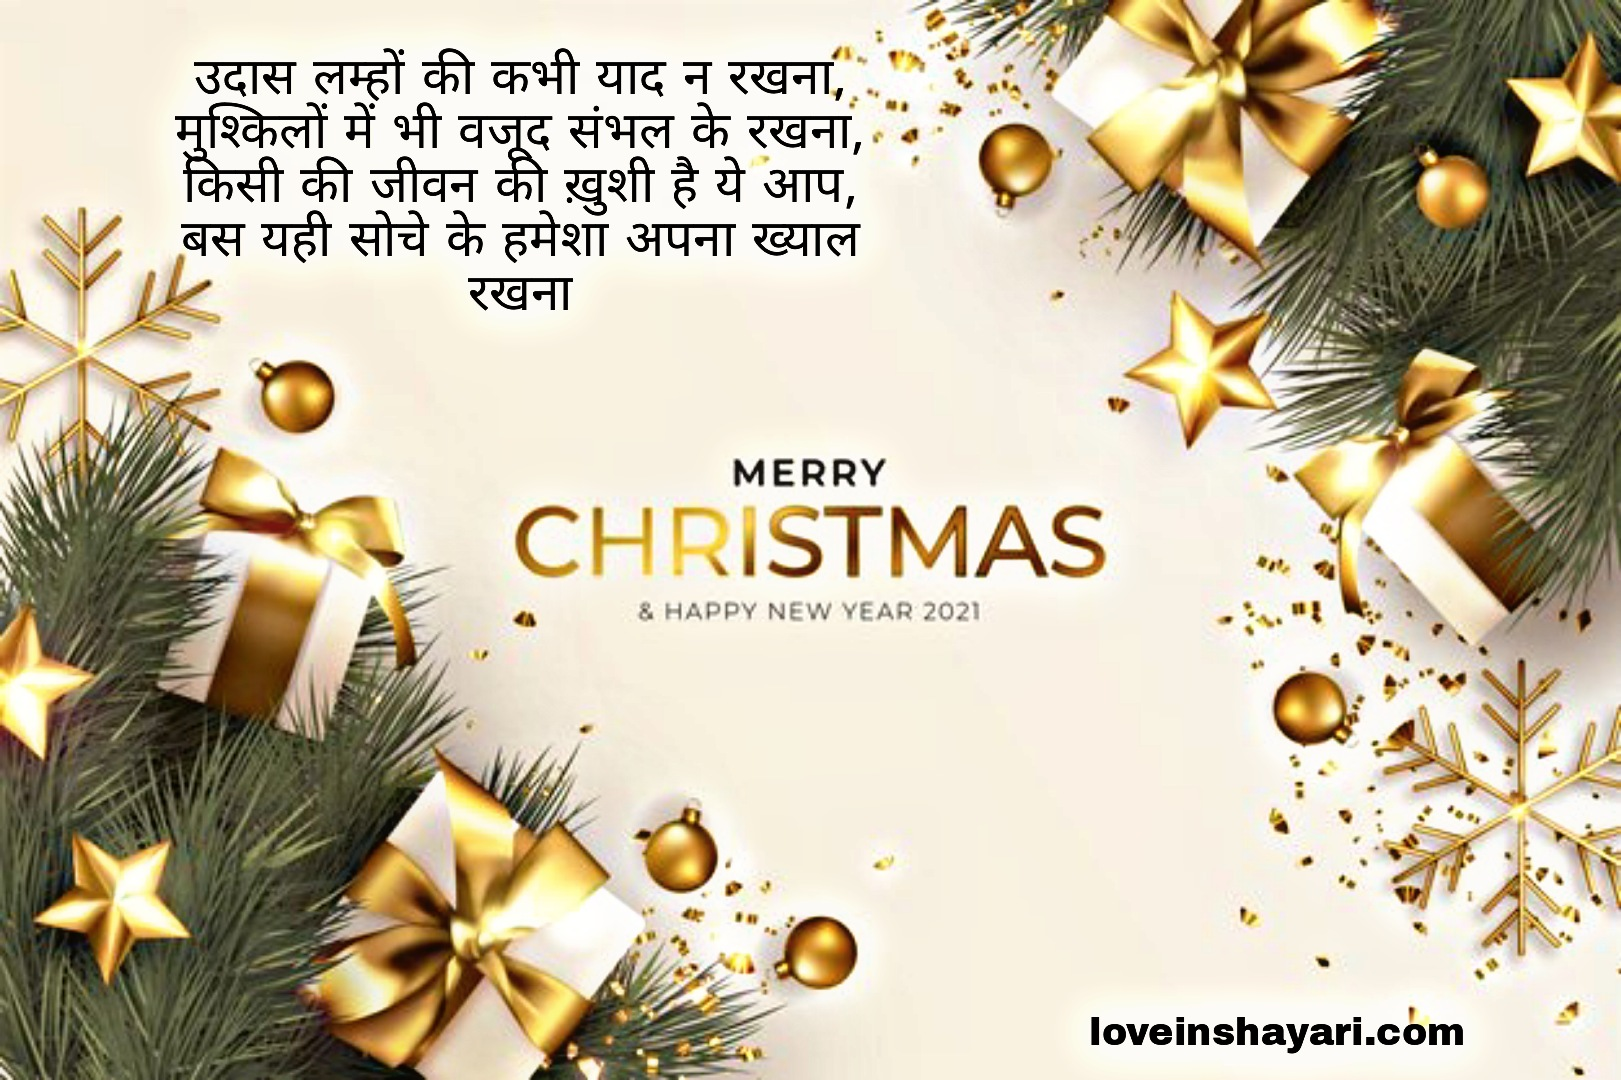 Merry Christmas wishes shayari quotes messages